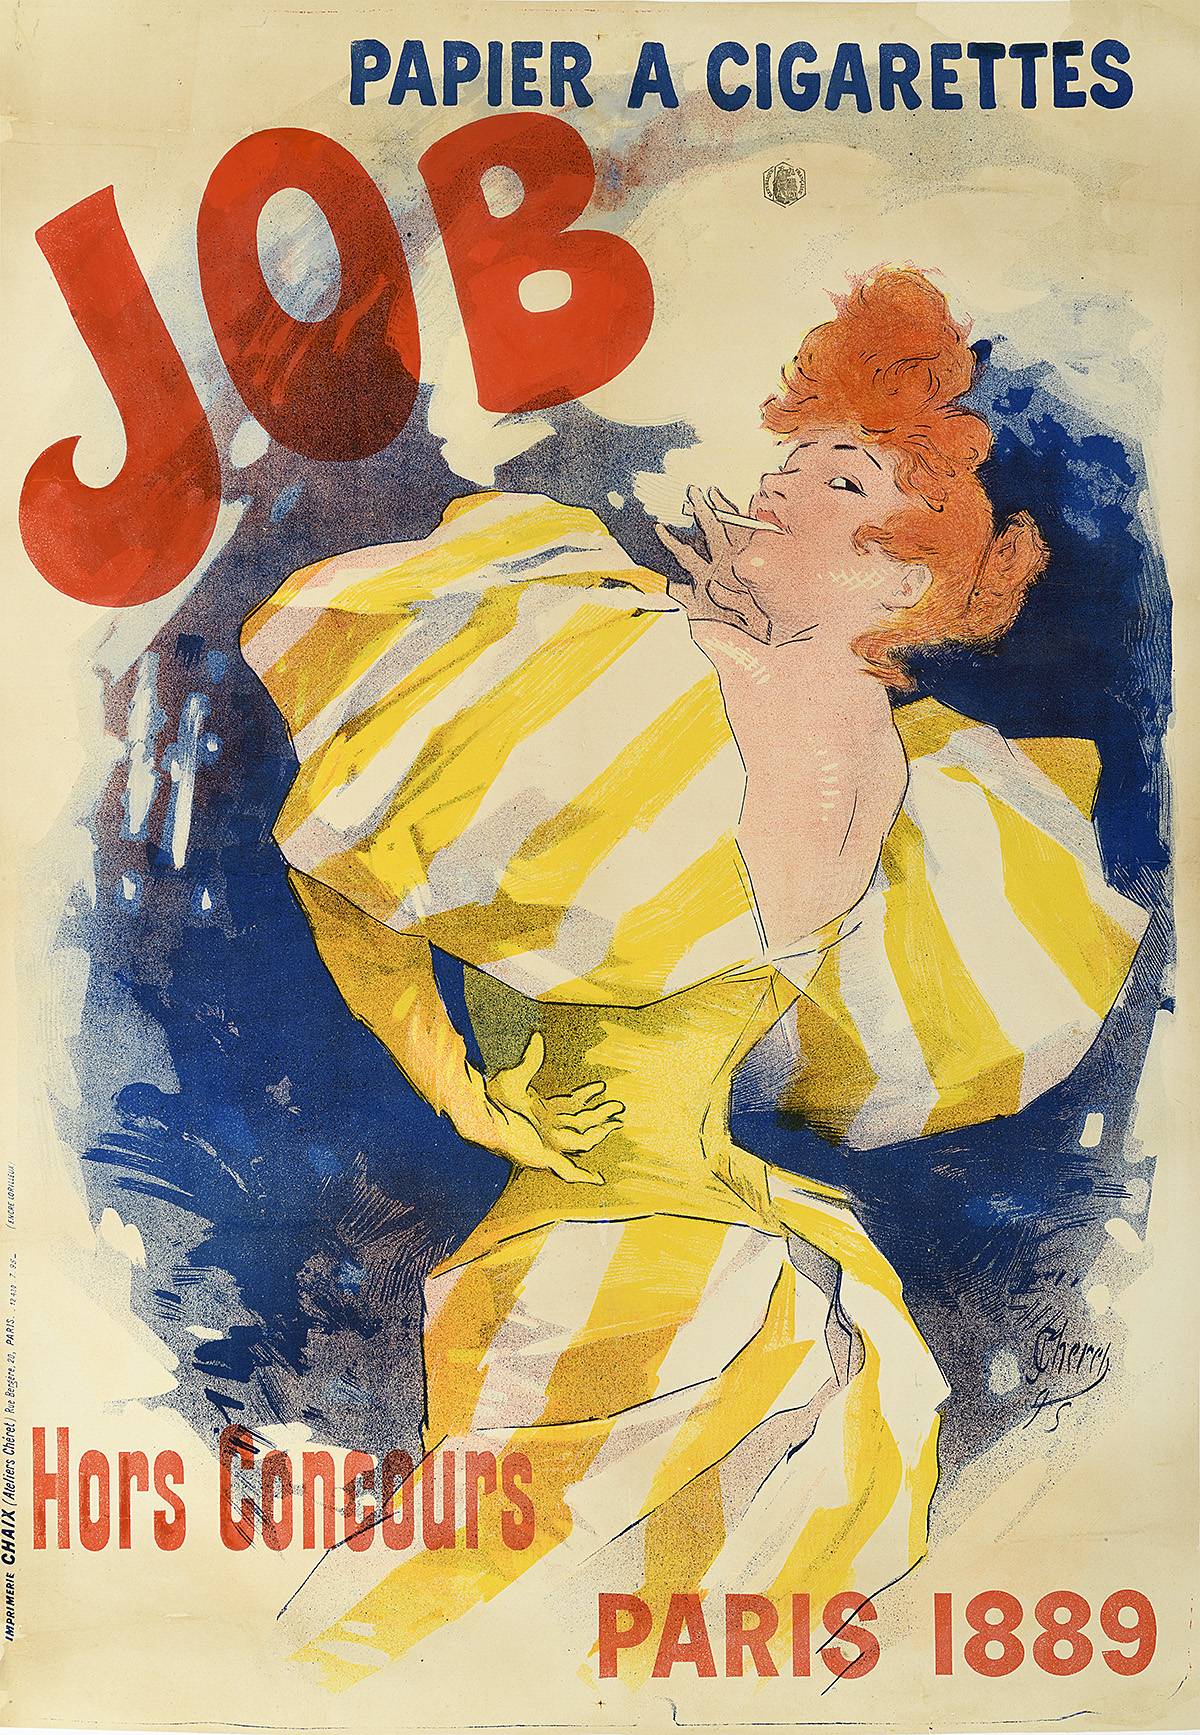 illustrational poster of a woman with red hair in a yellow dress looking over her shoulder as she smokes a cigarette